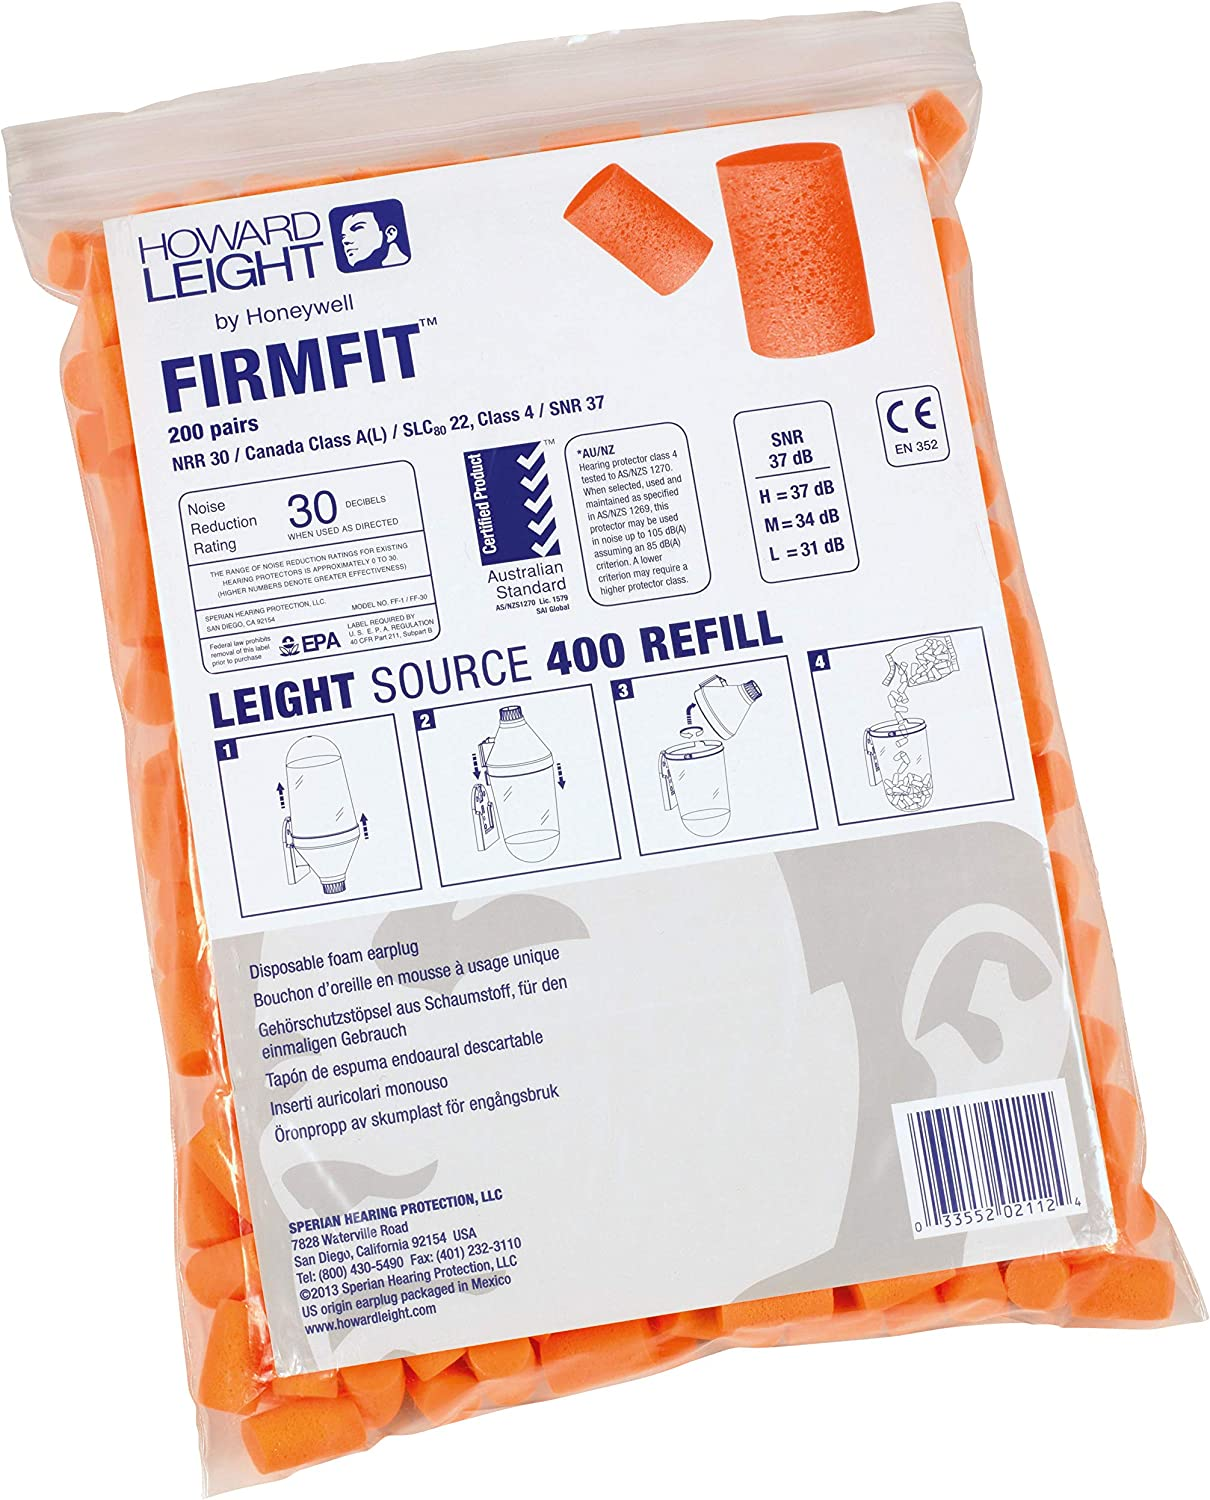 Howard Leight National uniform Lowest price challenge free shipping by Honeywell FirmFit Sou for Refill Earplug